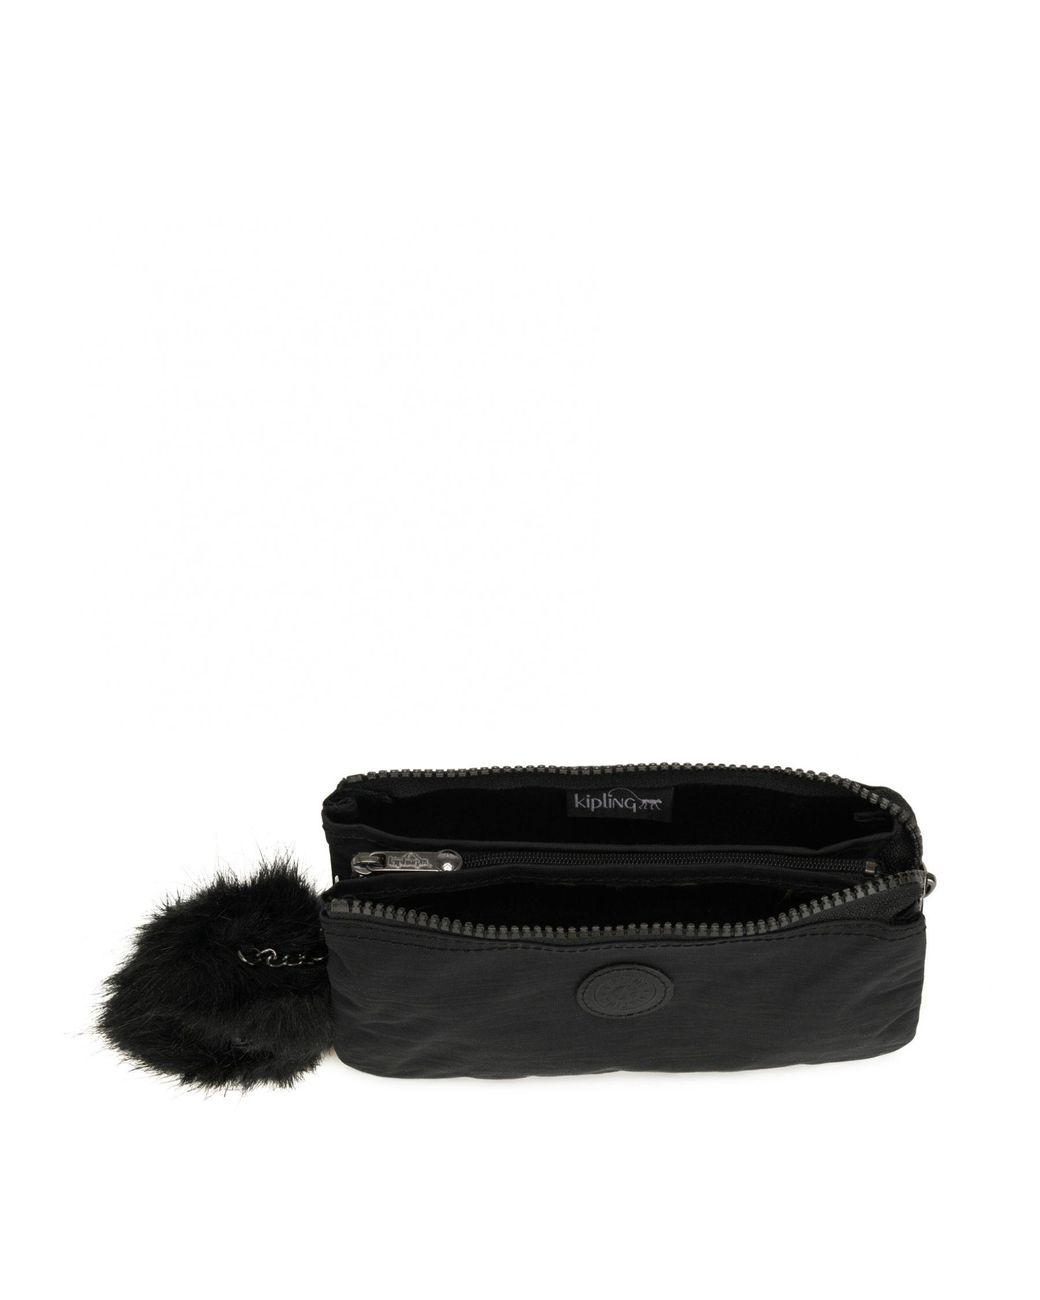 729d68cdac Kipling Creativity L in Black - Save 9% - Lyst